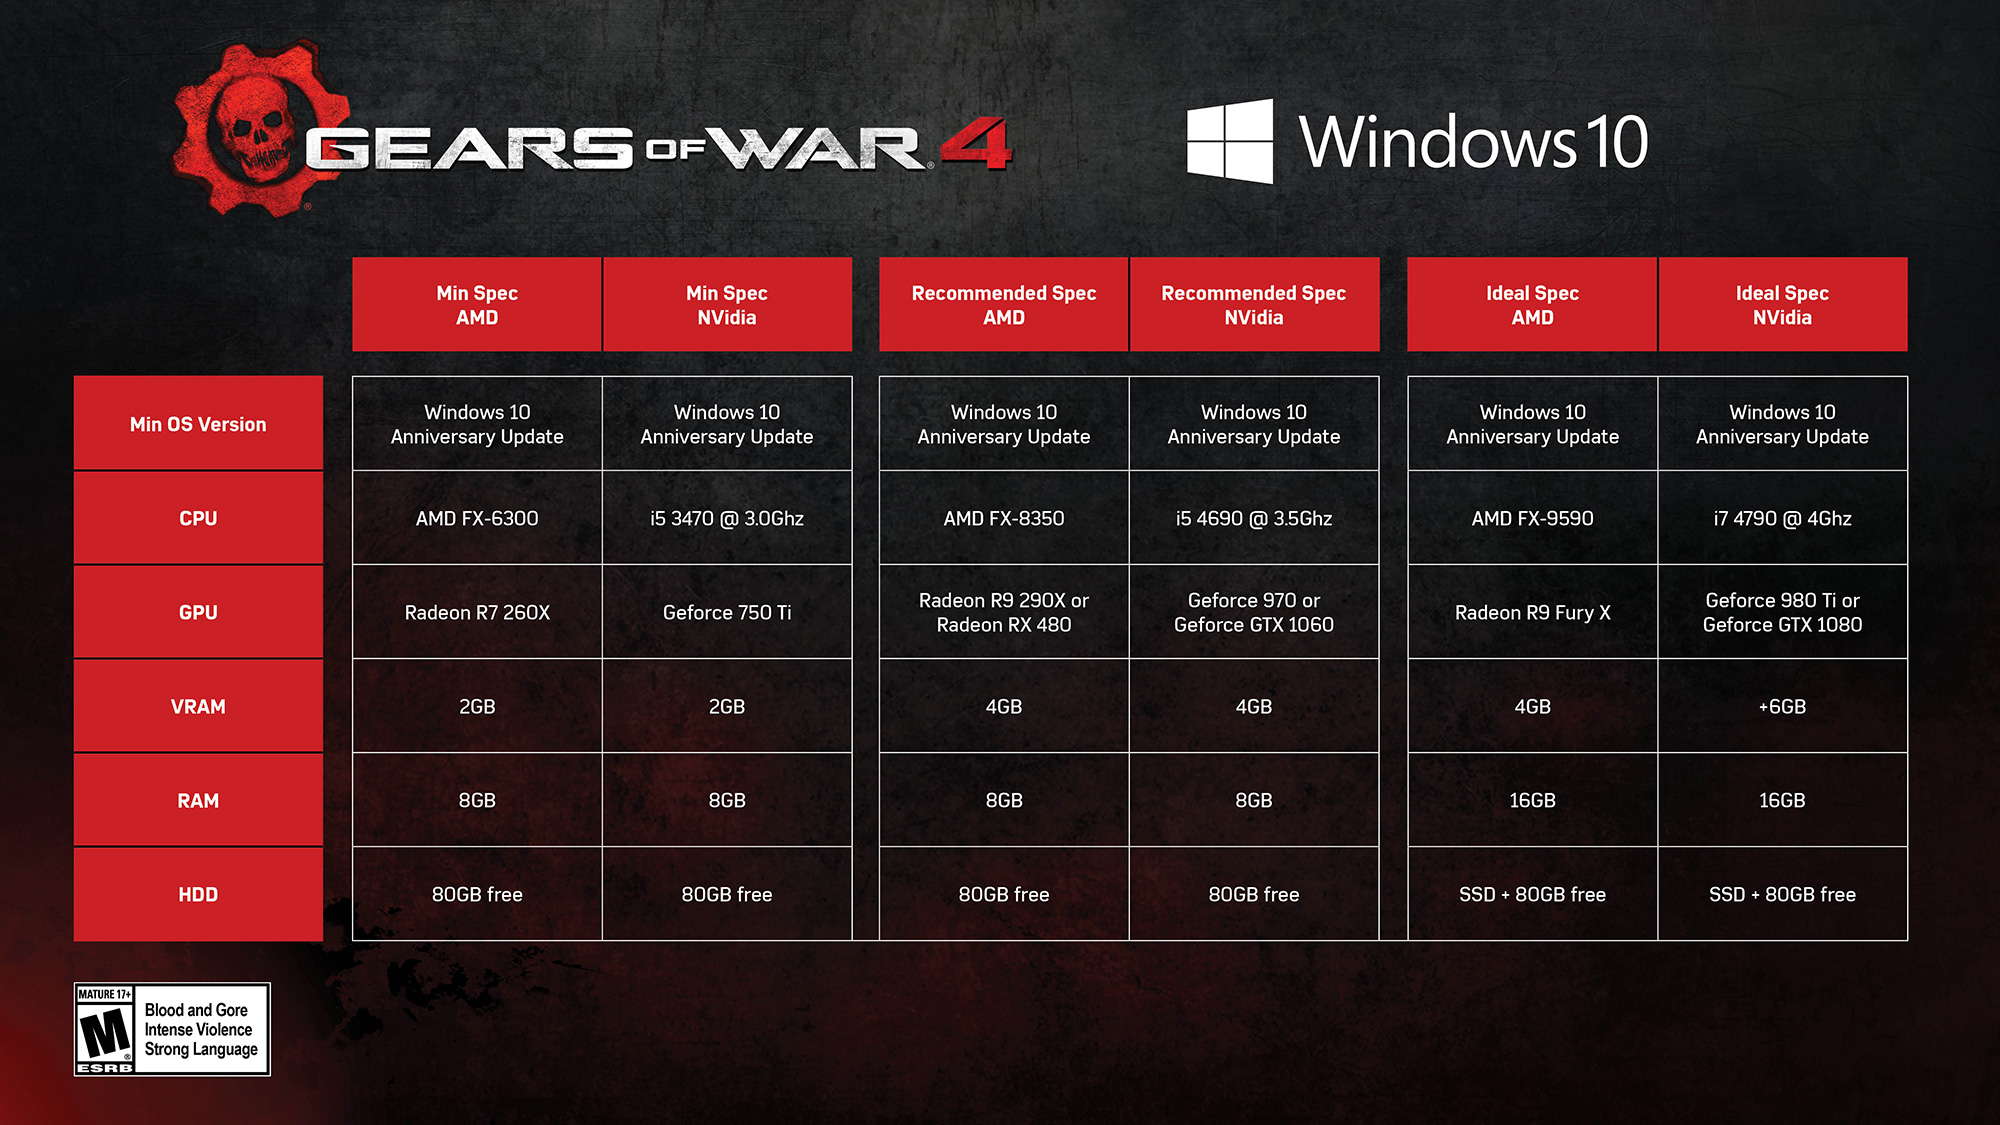 rescue drones with Check Out This Gears Of War 4 Gameplay Video Shown In Lovely 4k At Games  Along With The Pc Specs on  besides Check Out This Gears Of War 4 Gameplay Video Shown In Lovely 4k At Games  Along With The Pc Specs as well EncyclopediaOfDrones likewise Boom besides Fa 37 Pics.